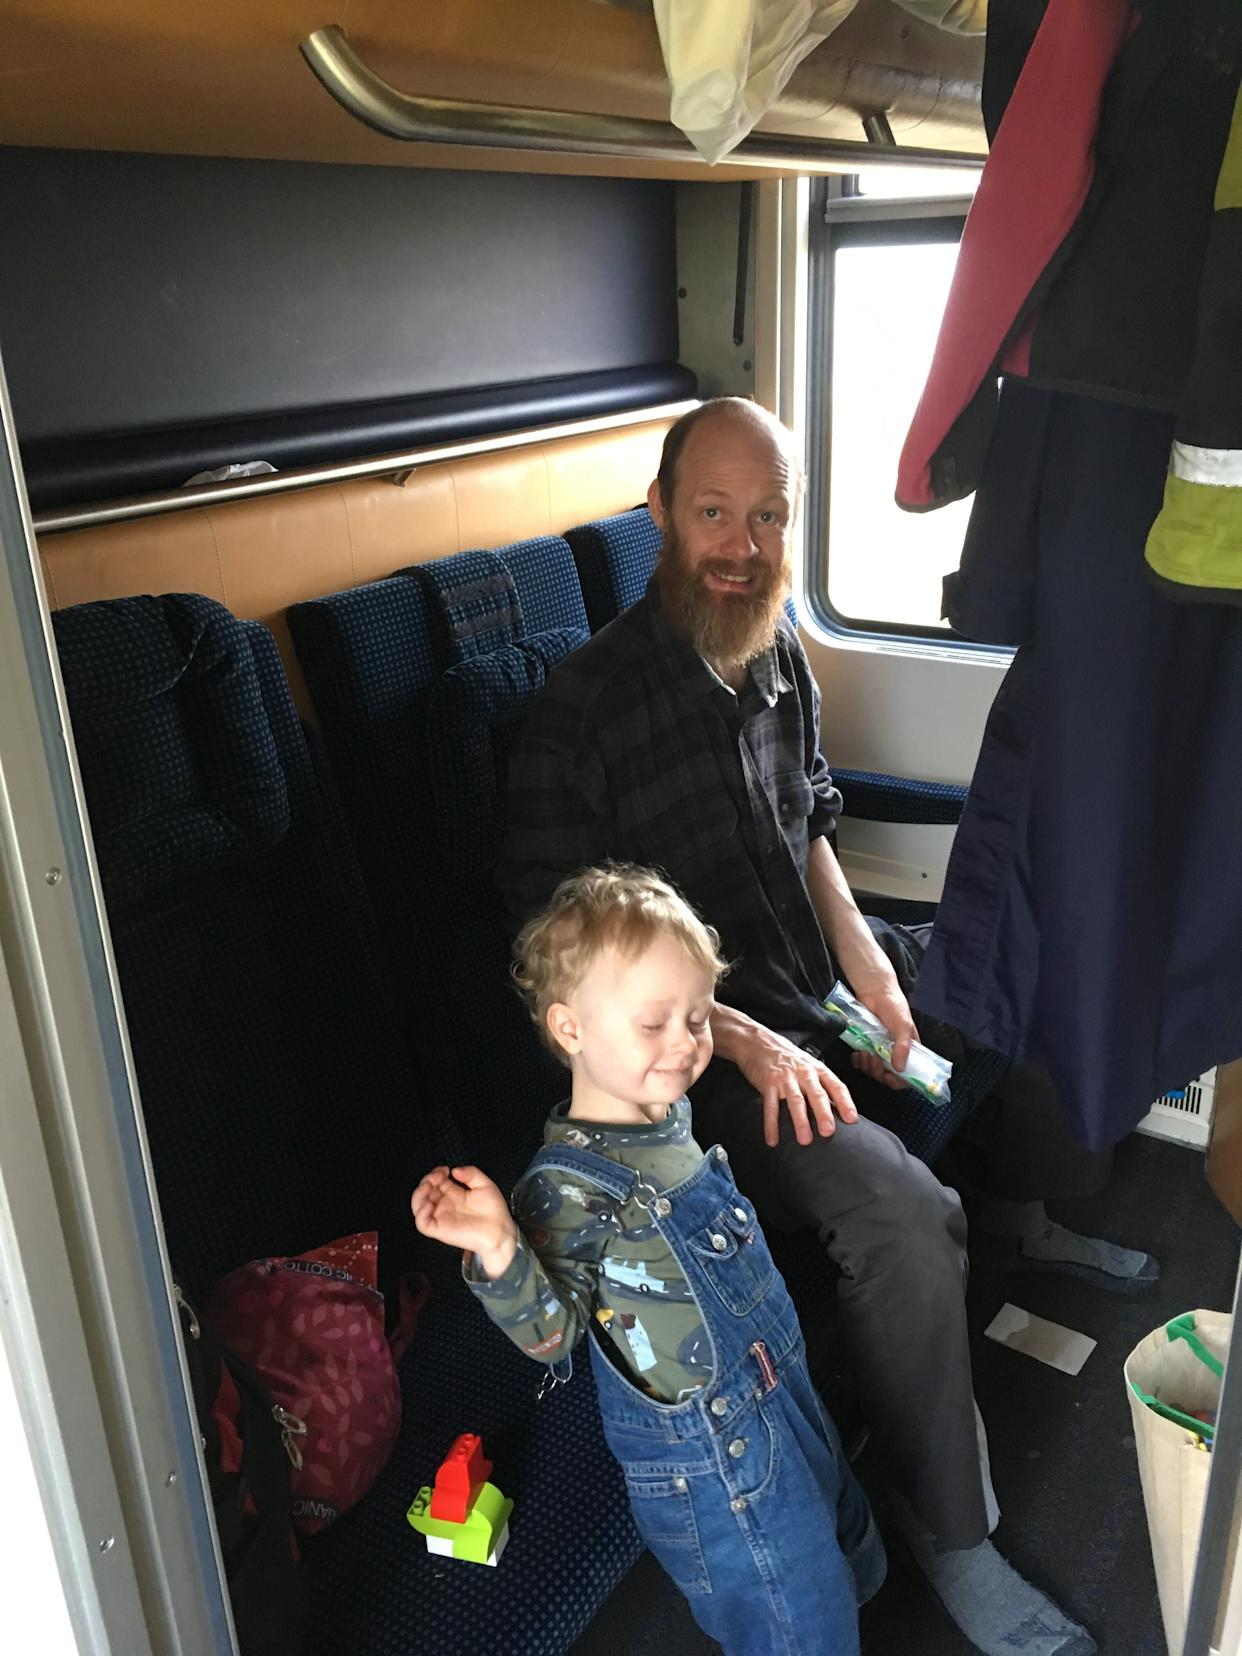 Leah Irby's husband and son on their three-week trip around Europe by train. (Photo: Leah Irby)